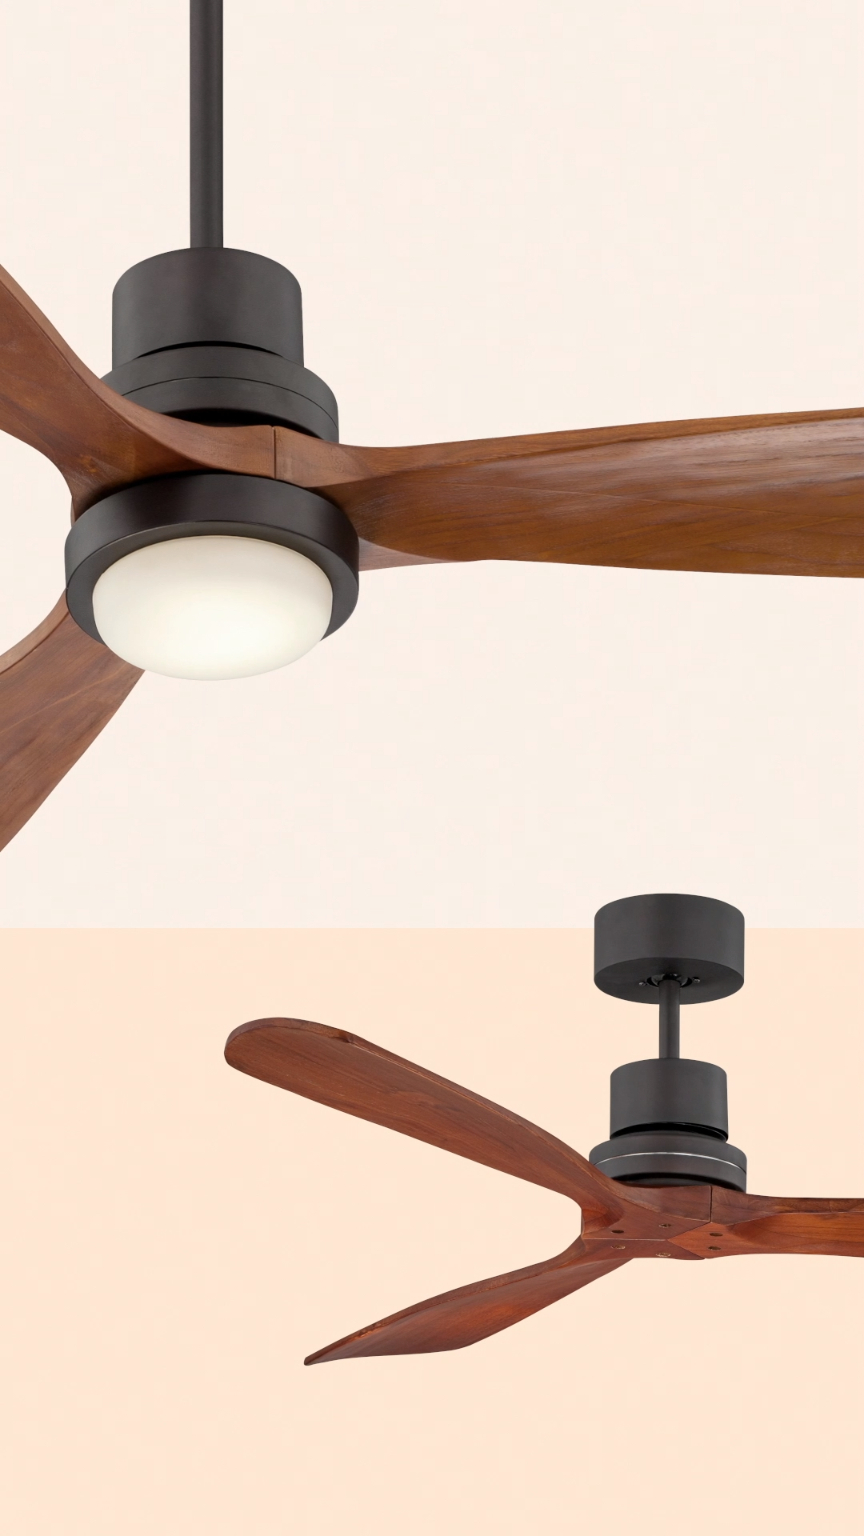 Are You As Big A Fan Of Ceiling Fans As We Are Ceiling Fans Are Available From Lamps Plus In Video Modern Ceiling Fan Tropical Ceiling Fans Ceiling Fan Chandelier